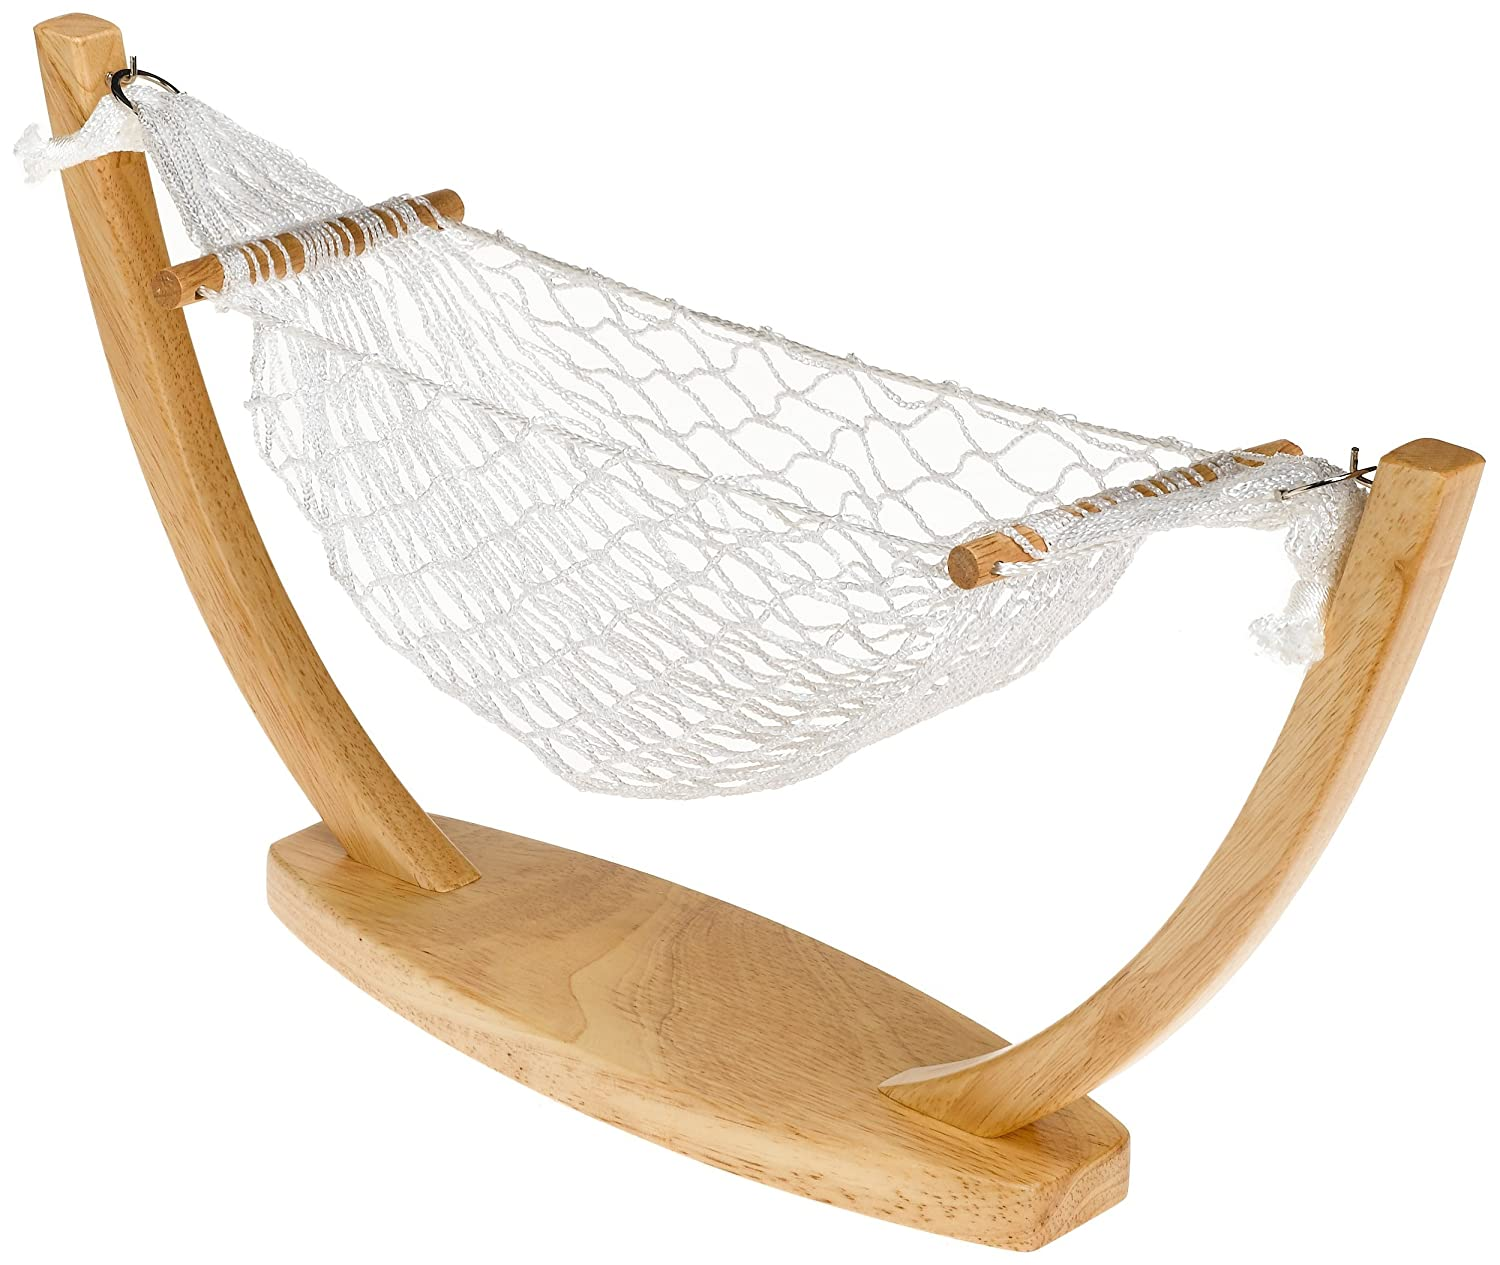 w hammock spreader htm bar wooden product p net rope double bars